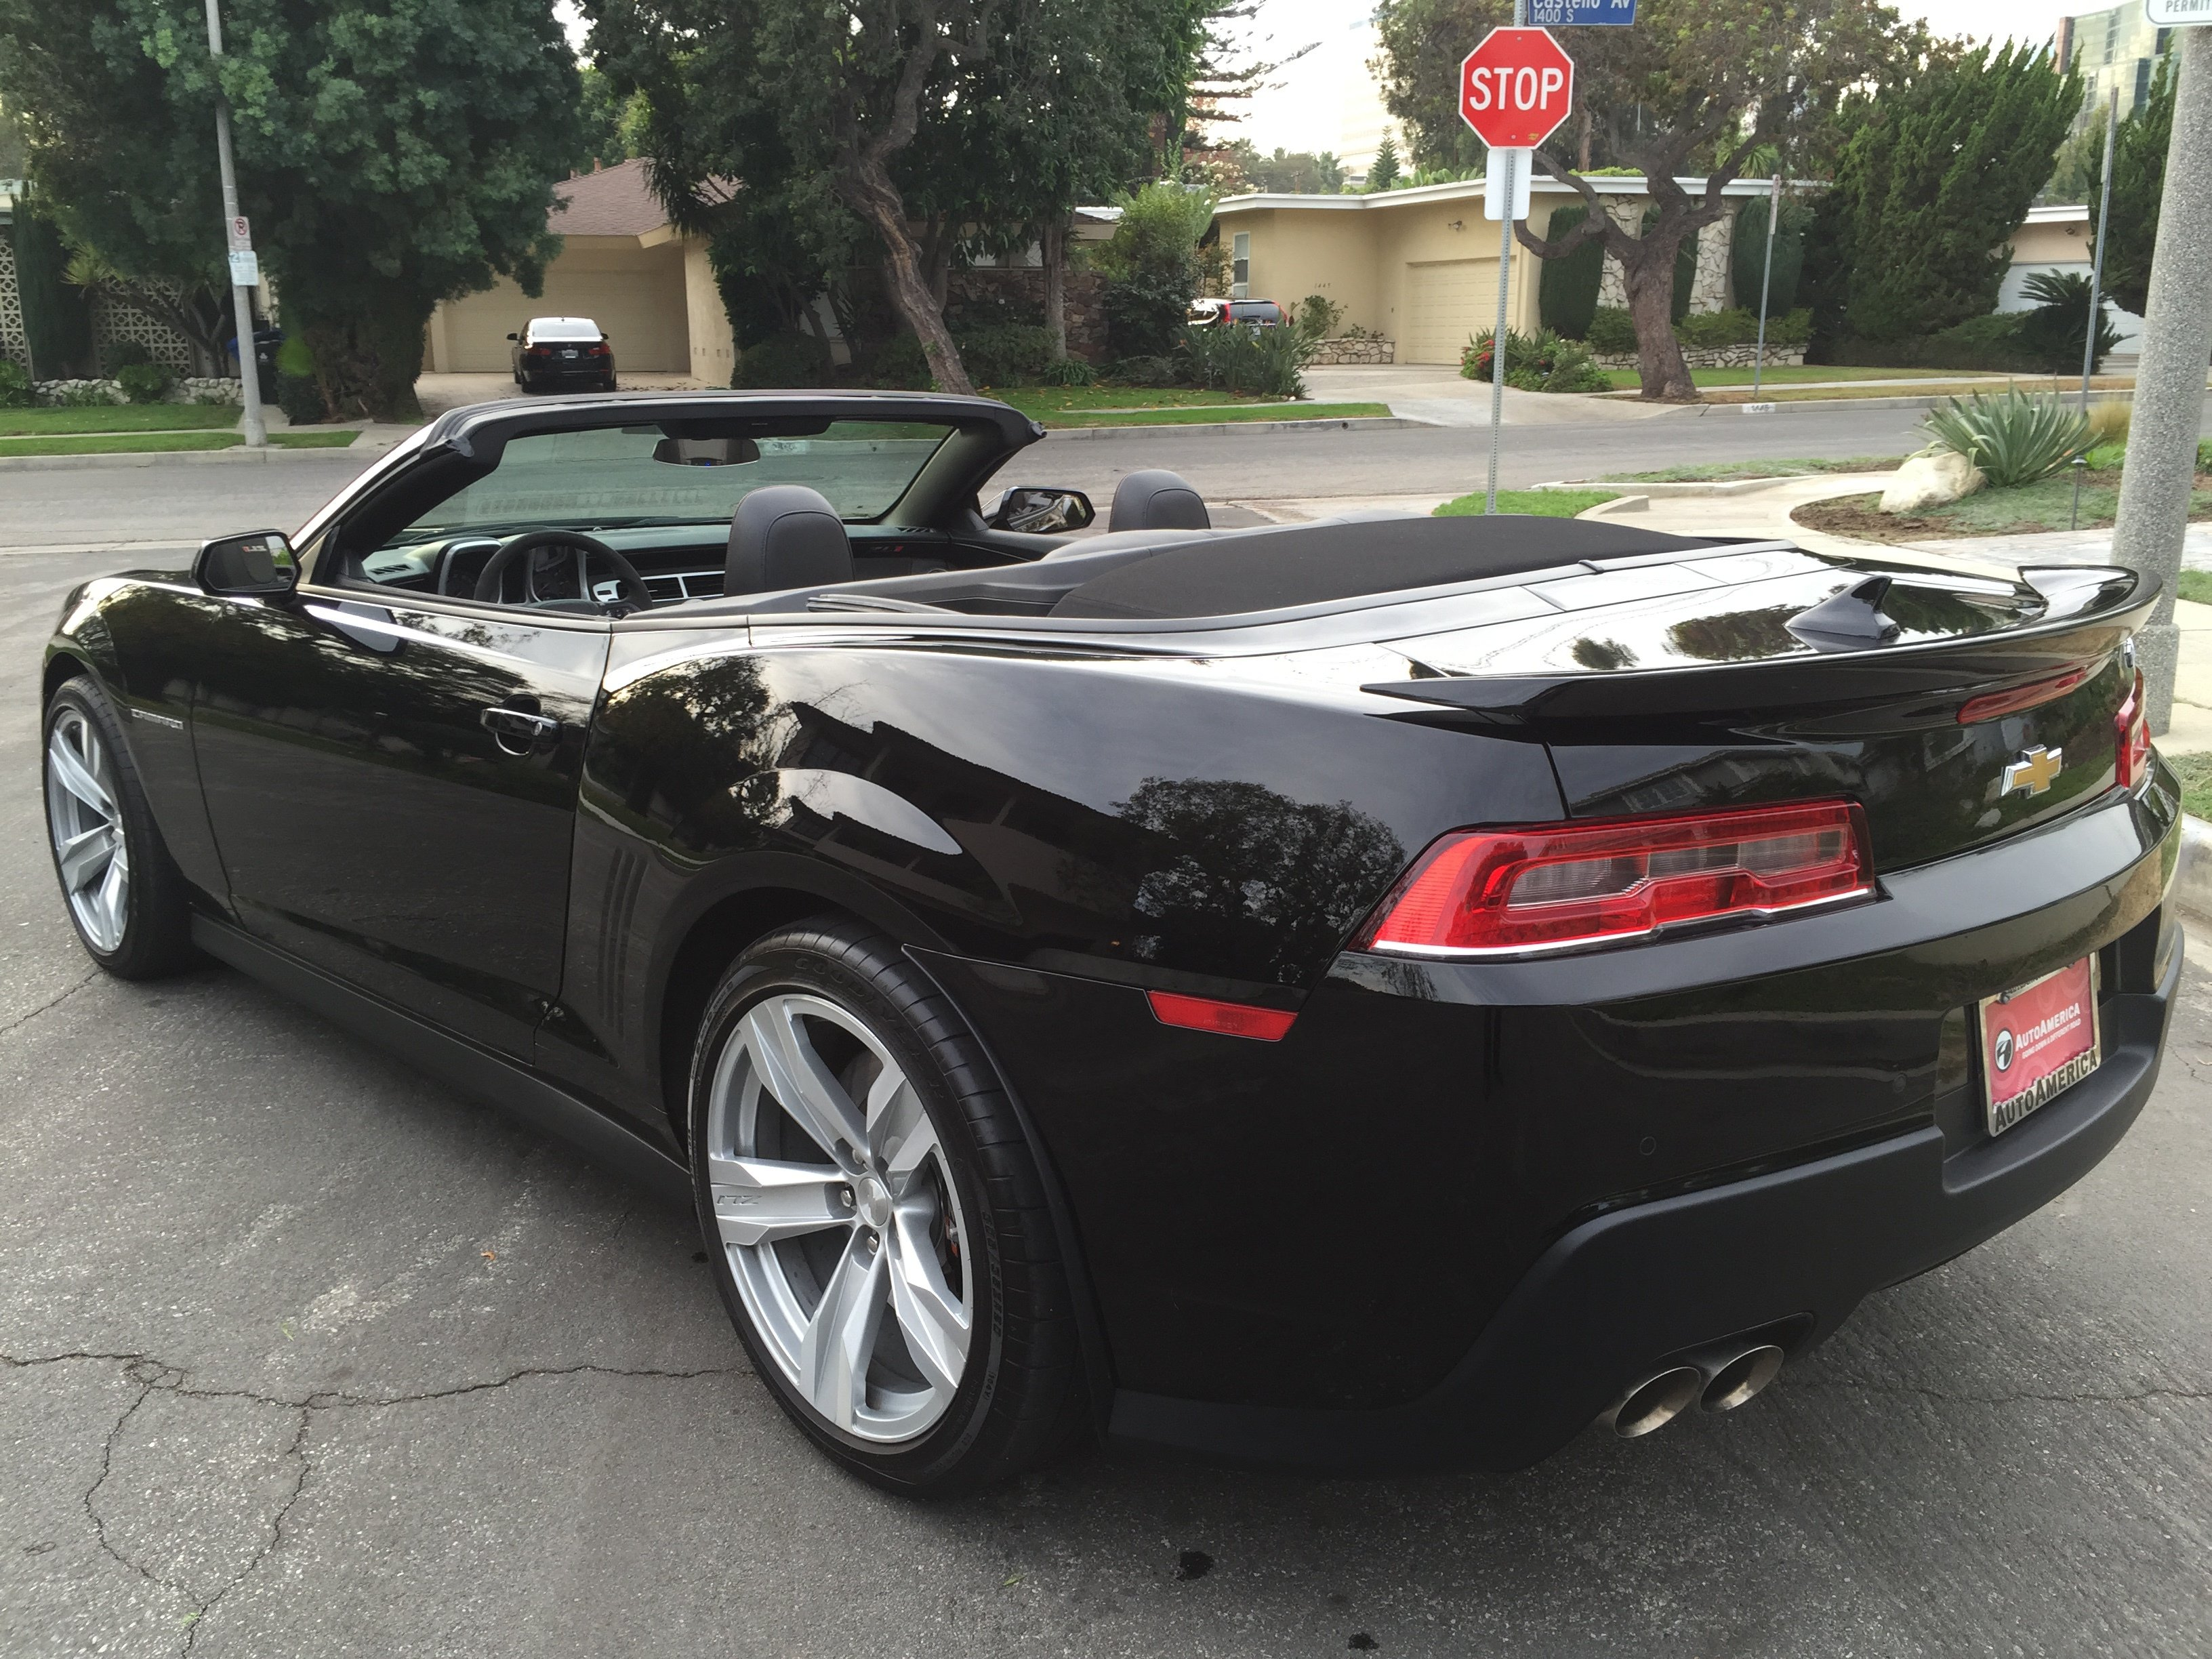 All New 2014 Chevy Camaro Zl1 Convertible For Rental In